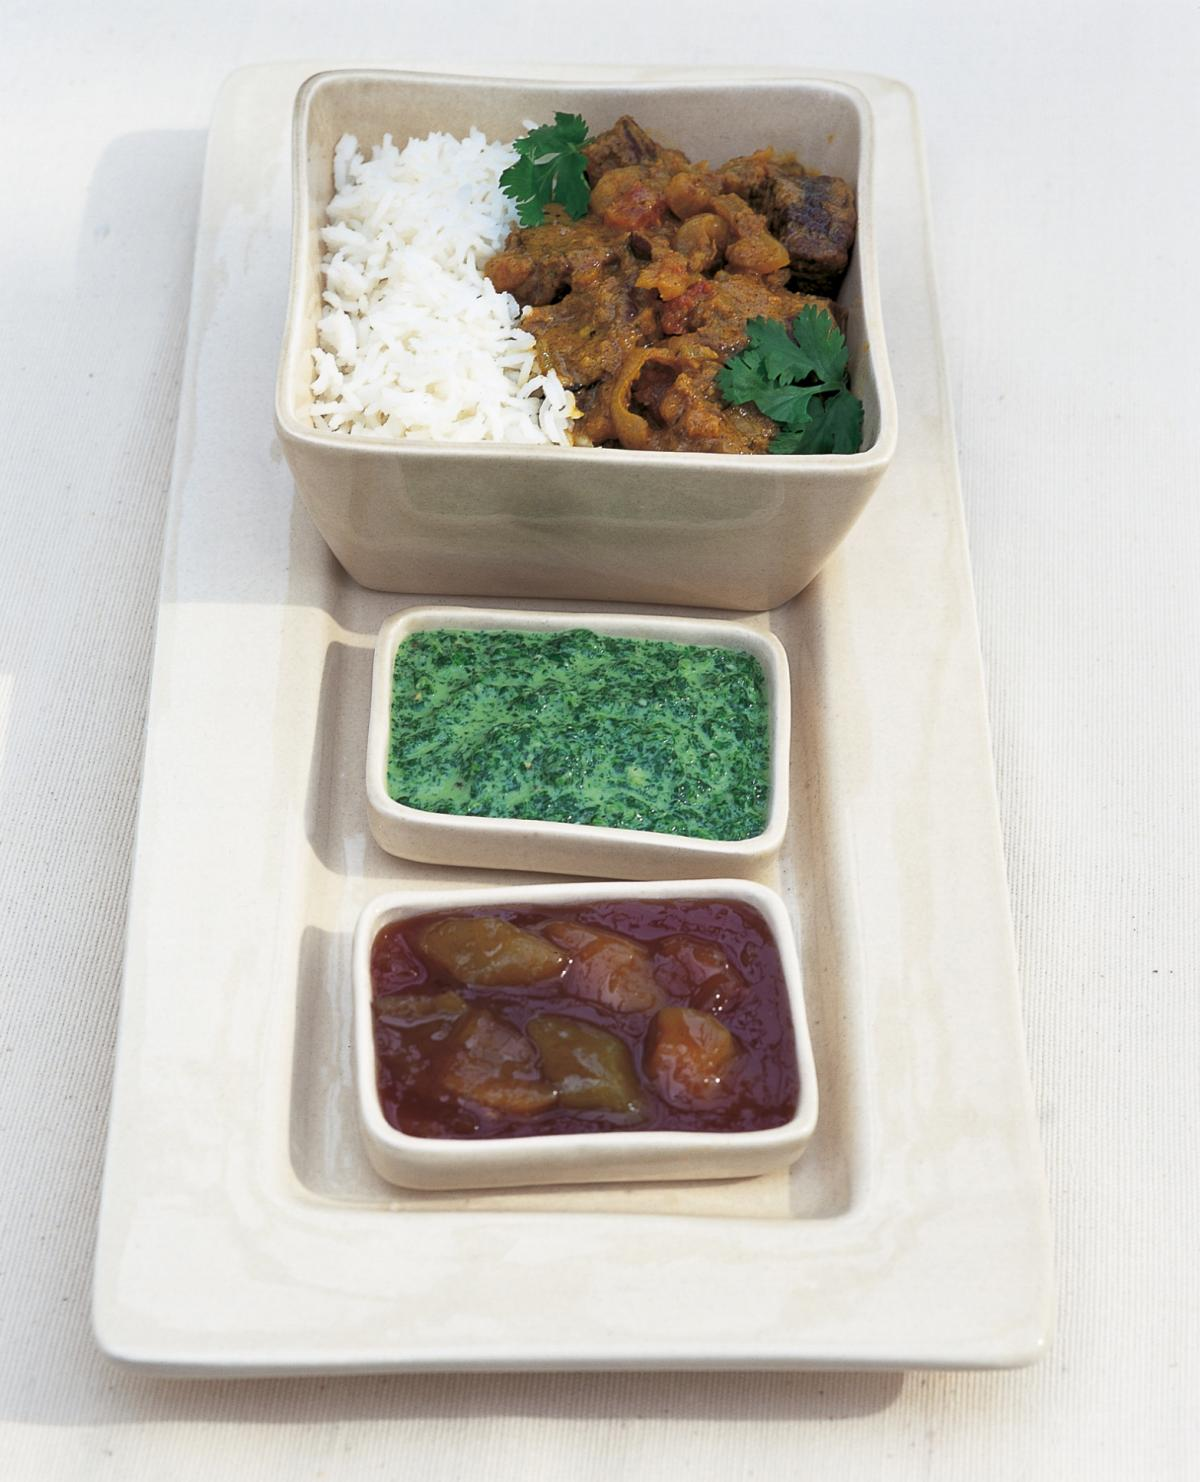 A picture of Delia's Indian recipes